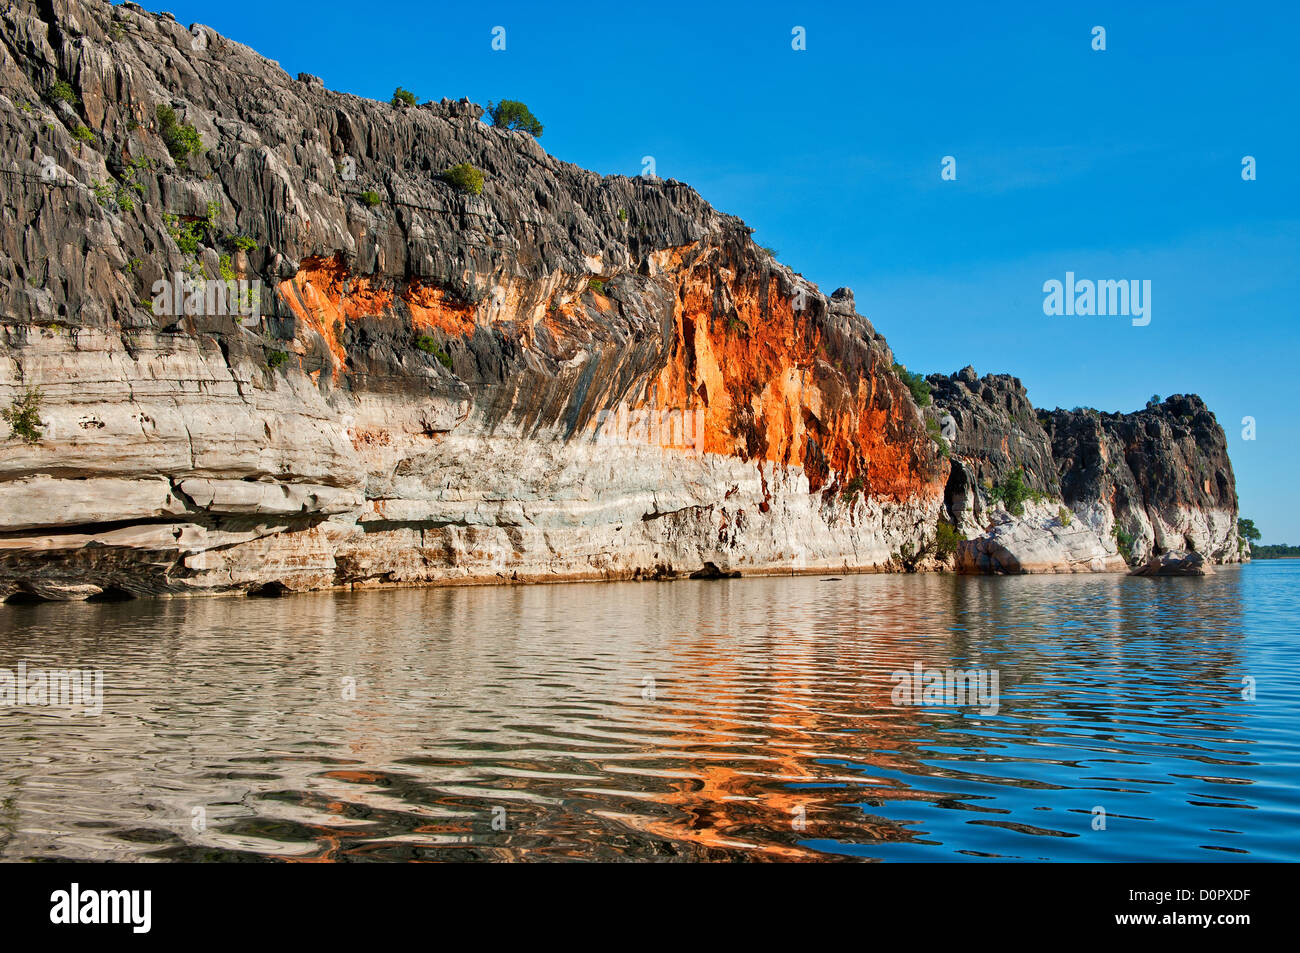 Reflections of Geiki Gorge. - Stock Image